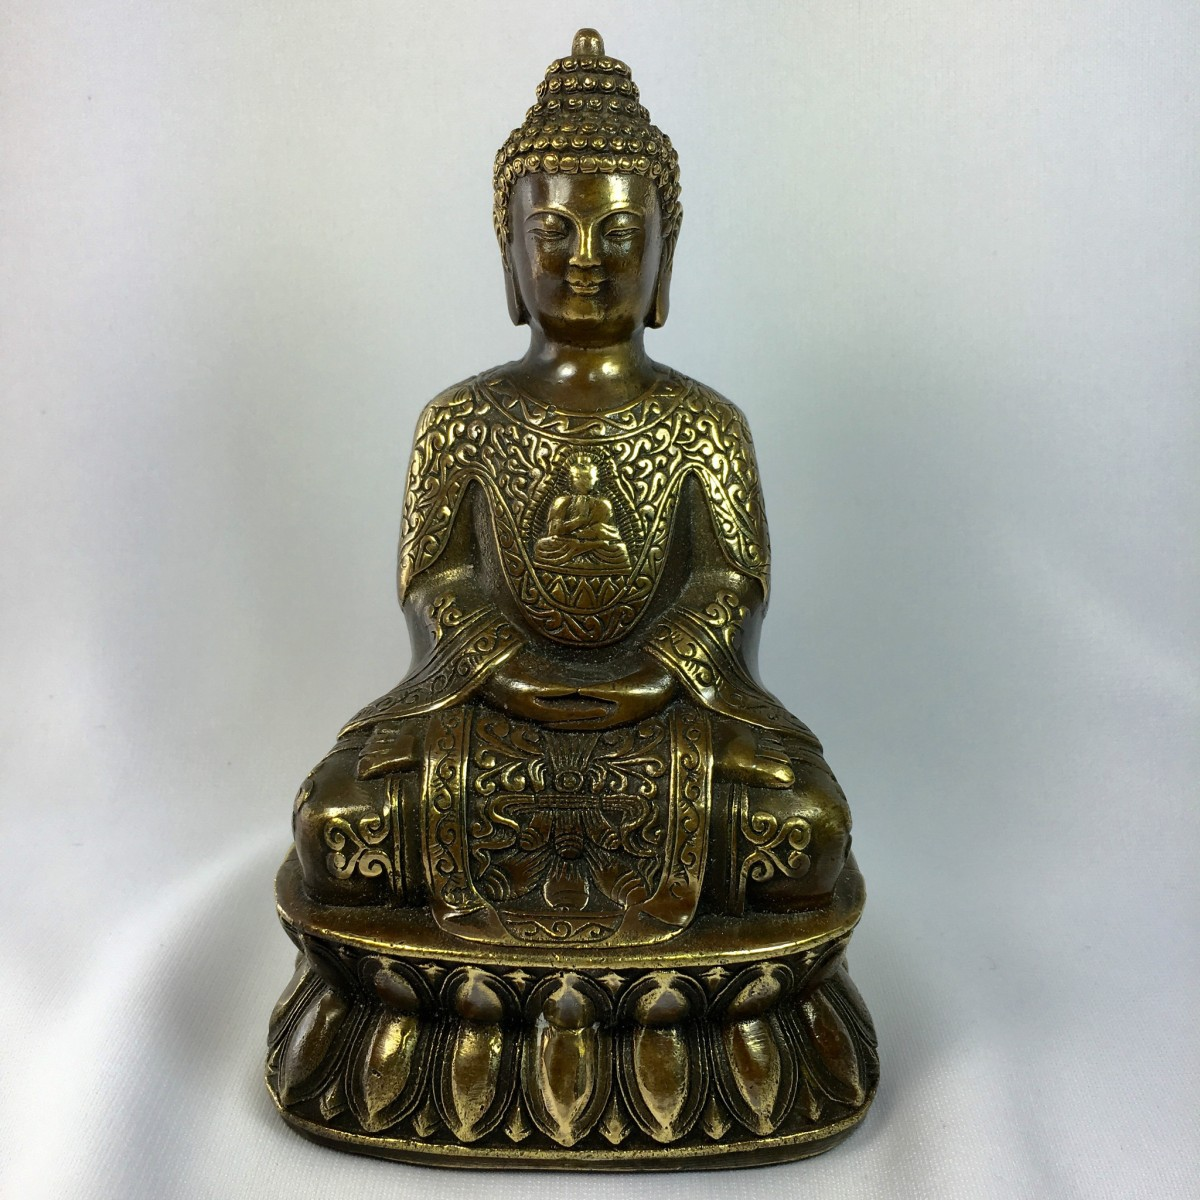 Buy Antique Handcrafted Buddha Lantern For Corporate: Unique Feng Shui Father's Day Gifts